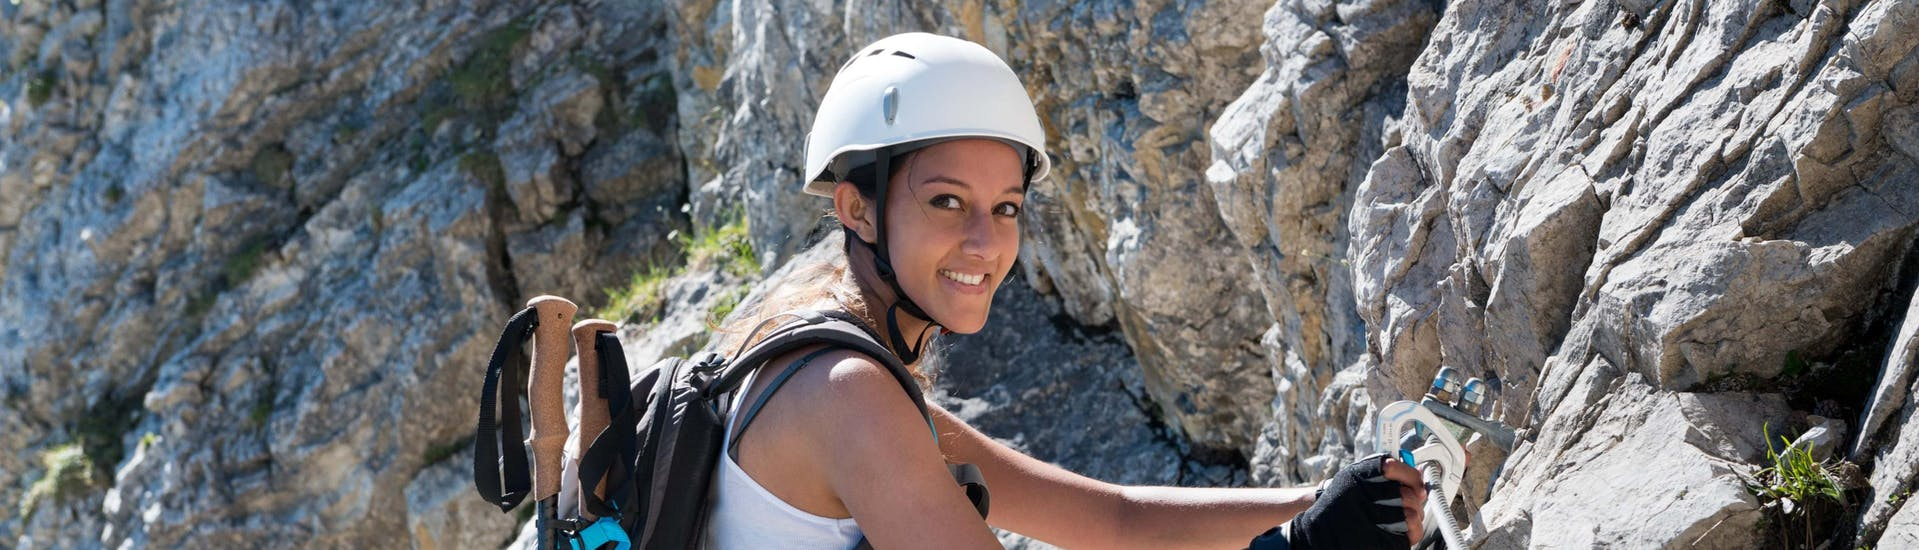 A young woman traversing along a via ferrata in the via ferrata hotspot of South Africa.